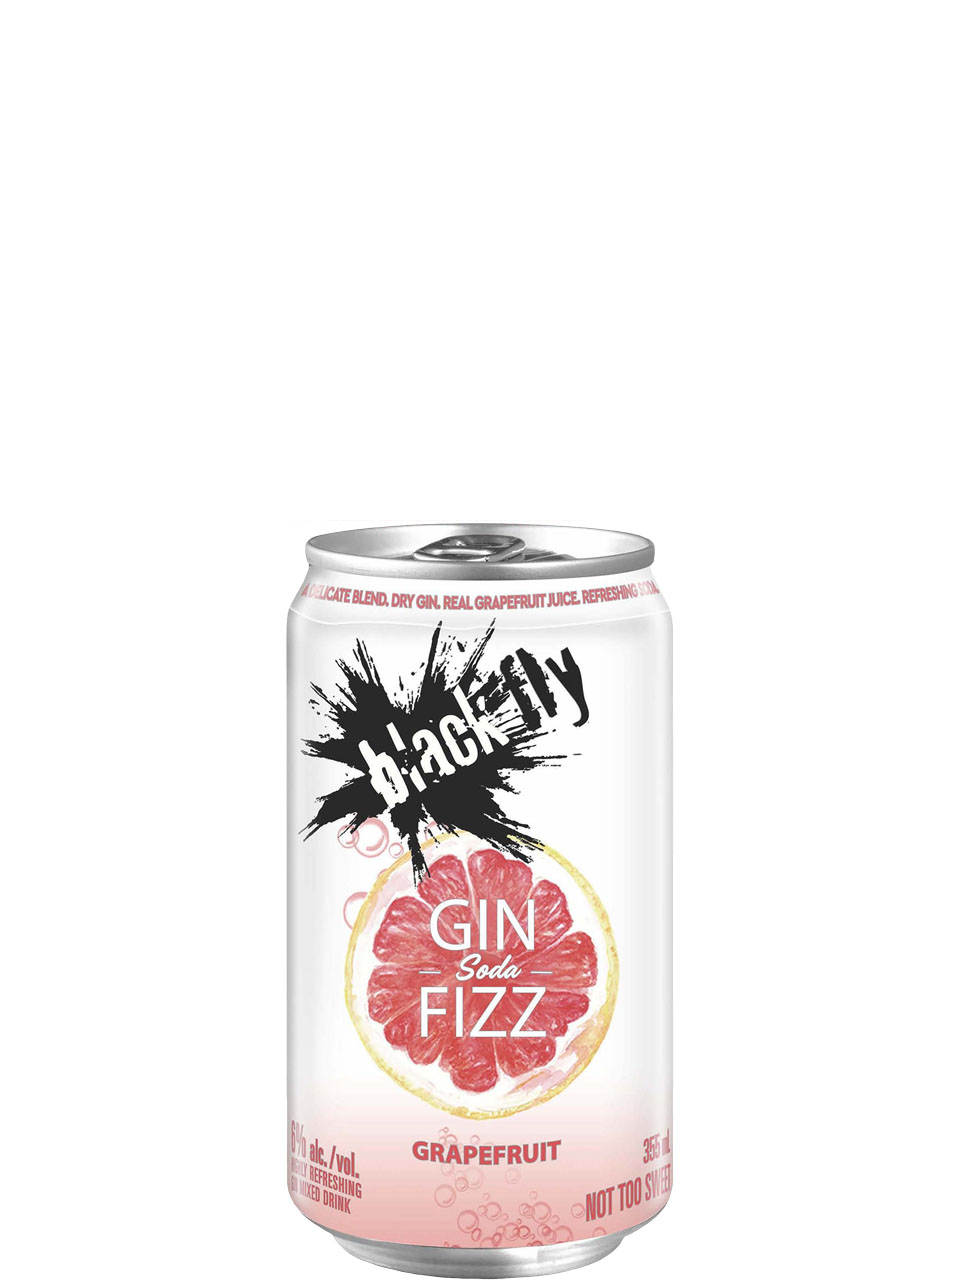 Black Fly Gin Fizz Grapefruit Soda 4 Pack Cans